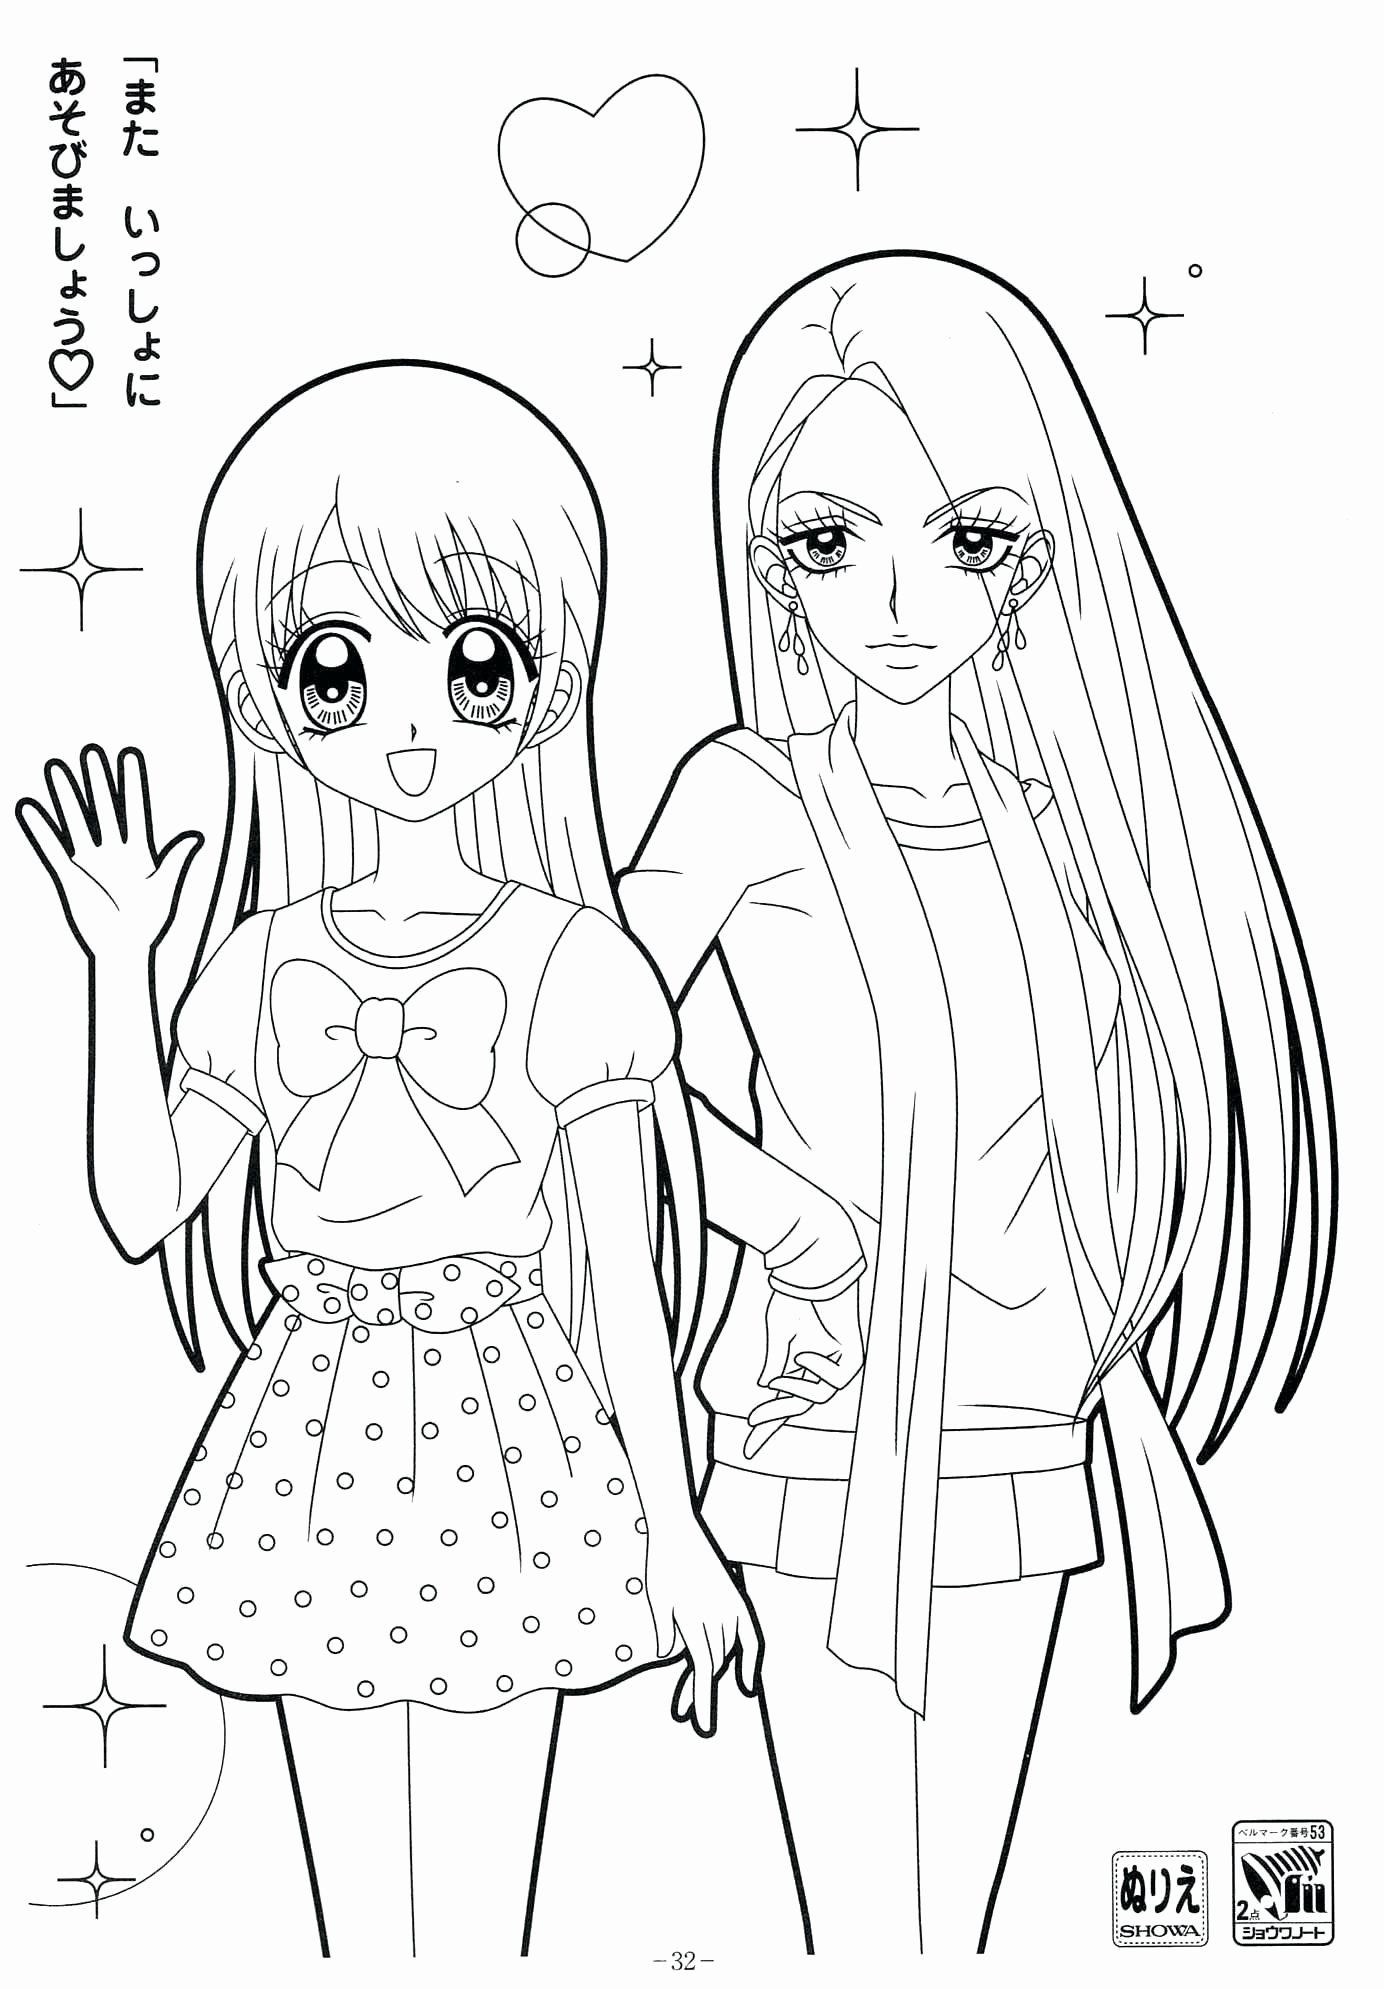 Anime Coloring Books For Adults Lovely Coloring Book Anime Coloring Books For Adults Amazin Coloring Pages For Girls Cool Coloring Pages Cartoon Coloring Pages